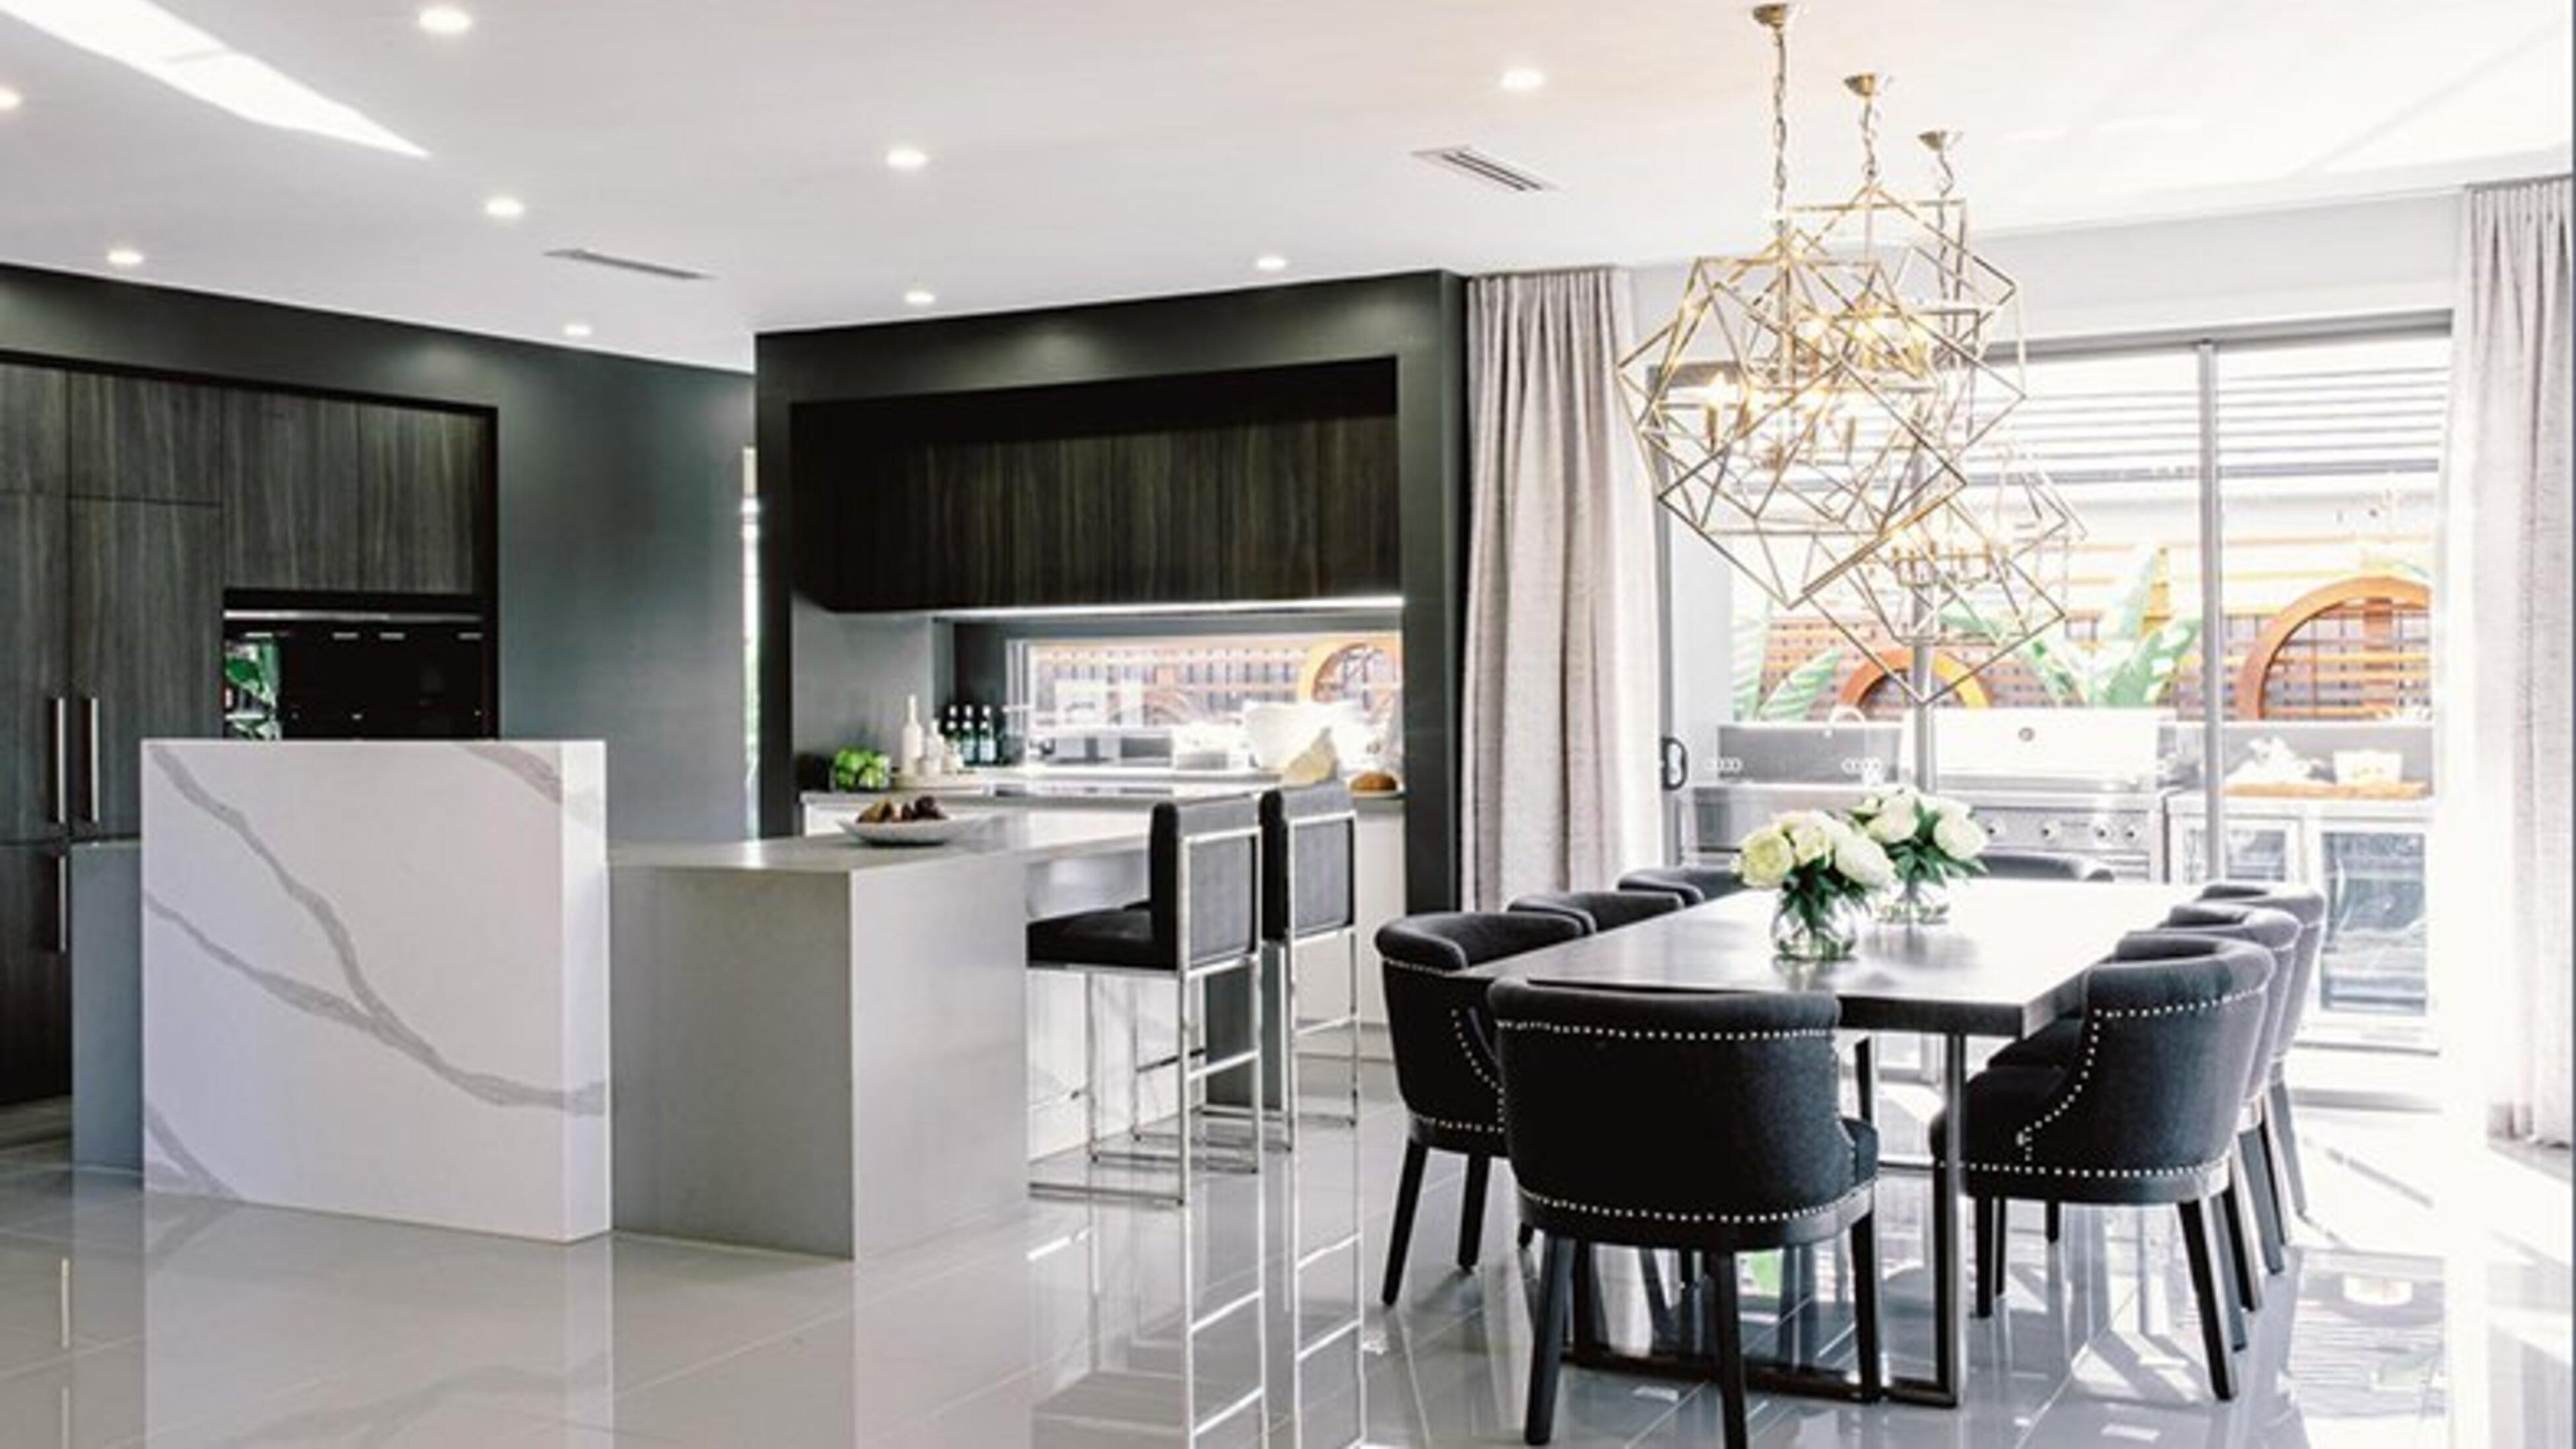 A kitchen with cool tones and a dining area with a table and pendant lighting.